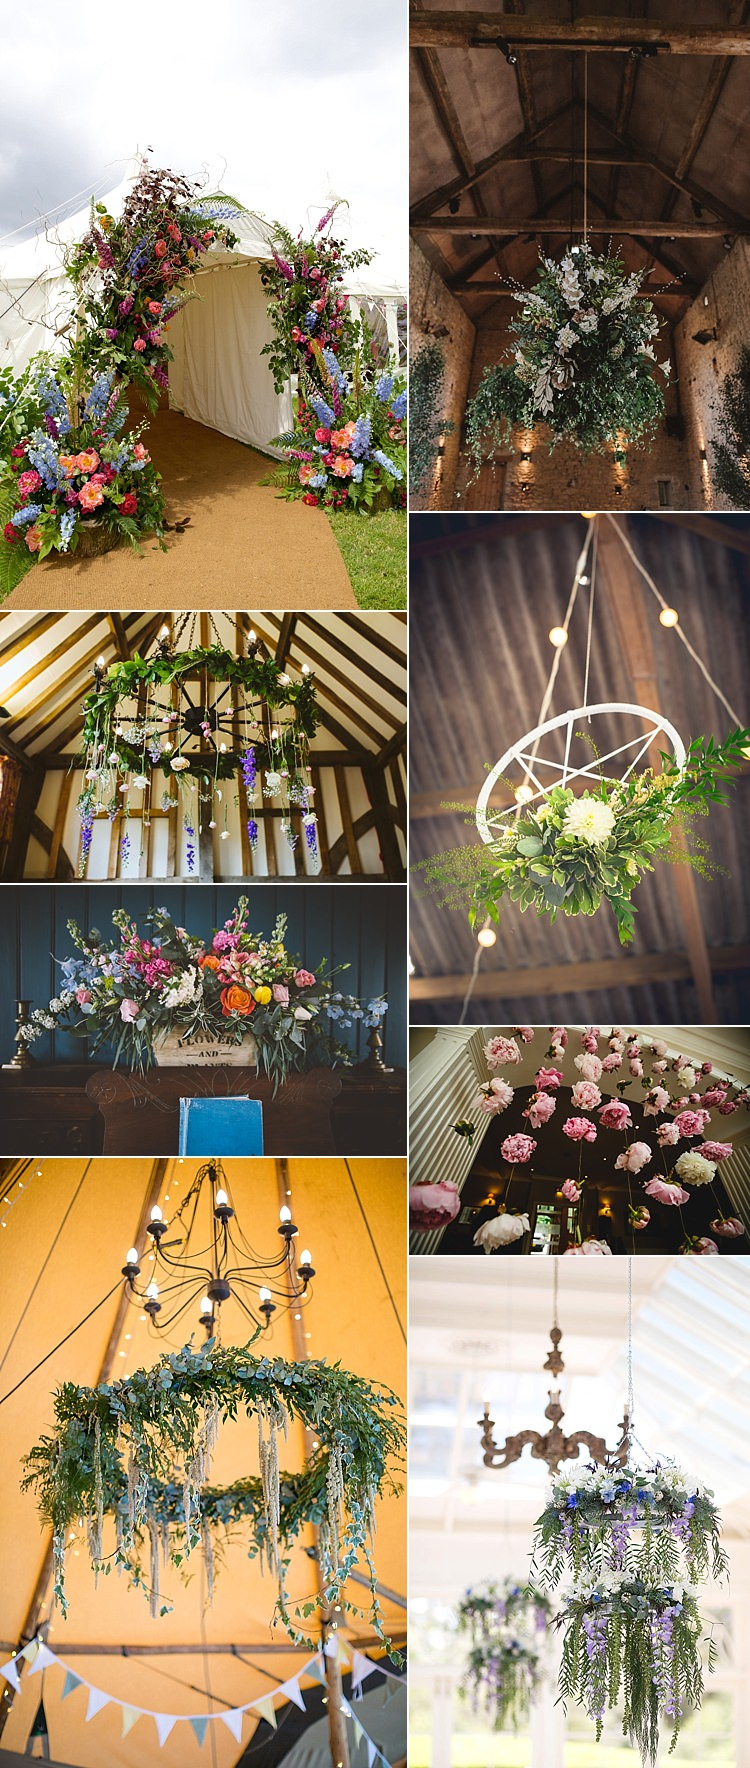 Installations Venue Decor 2017 Wedding Flower Trends Bouquets Ideas Inspiration